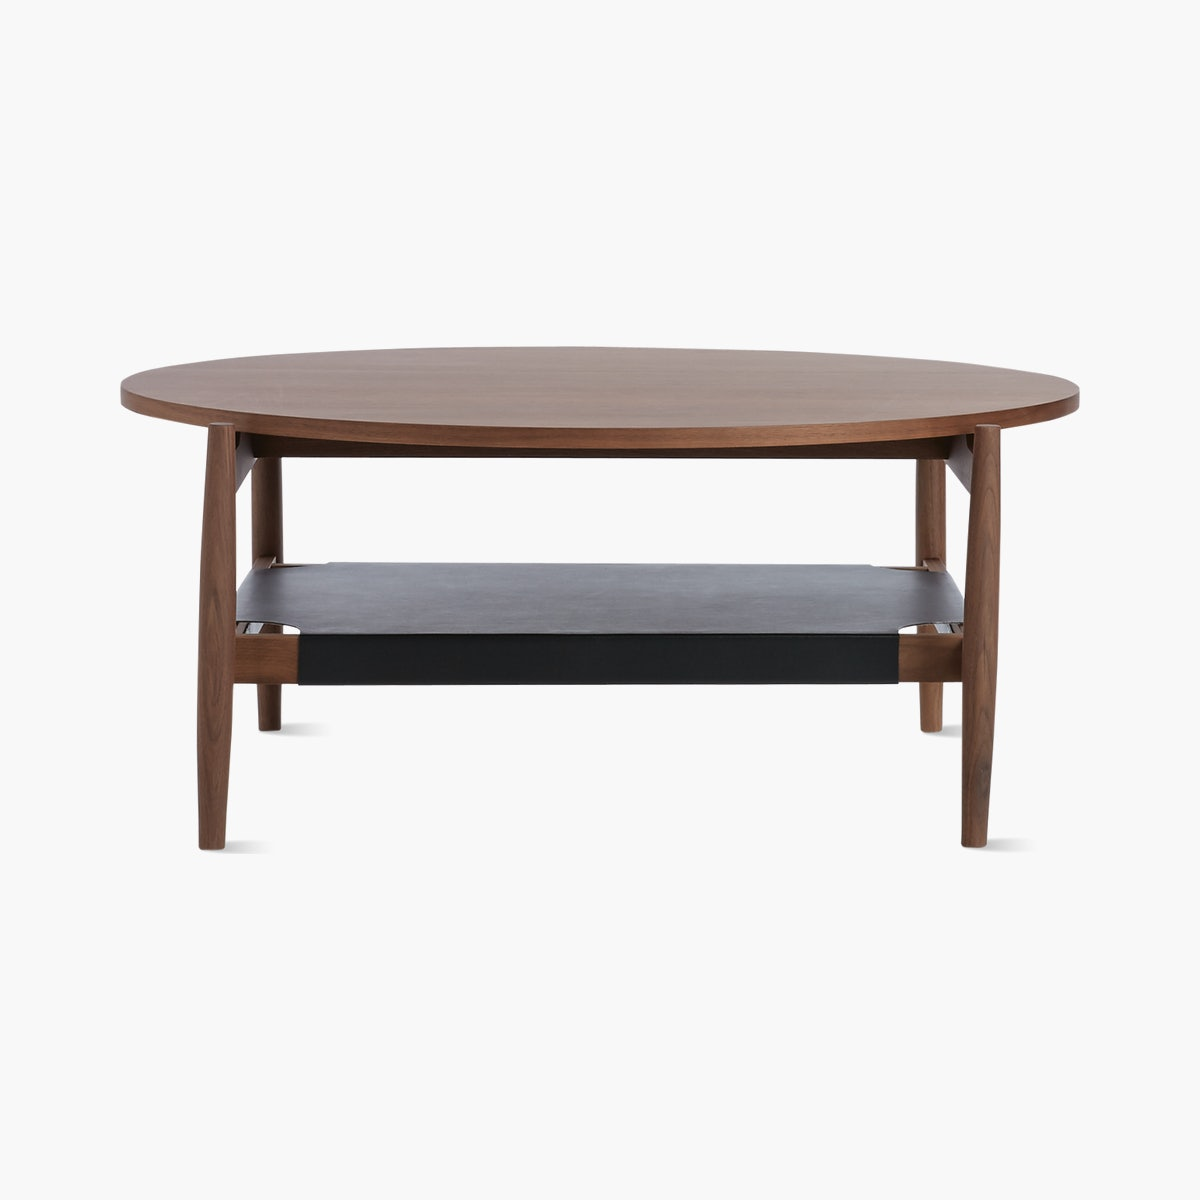 Risom T.300 Round Coffee Table